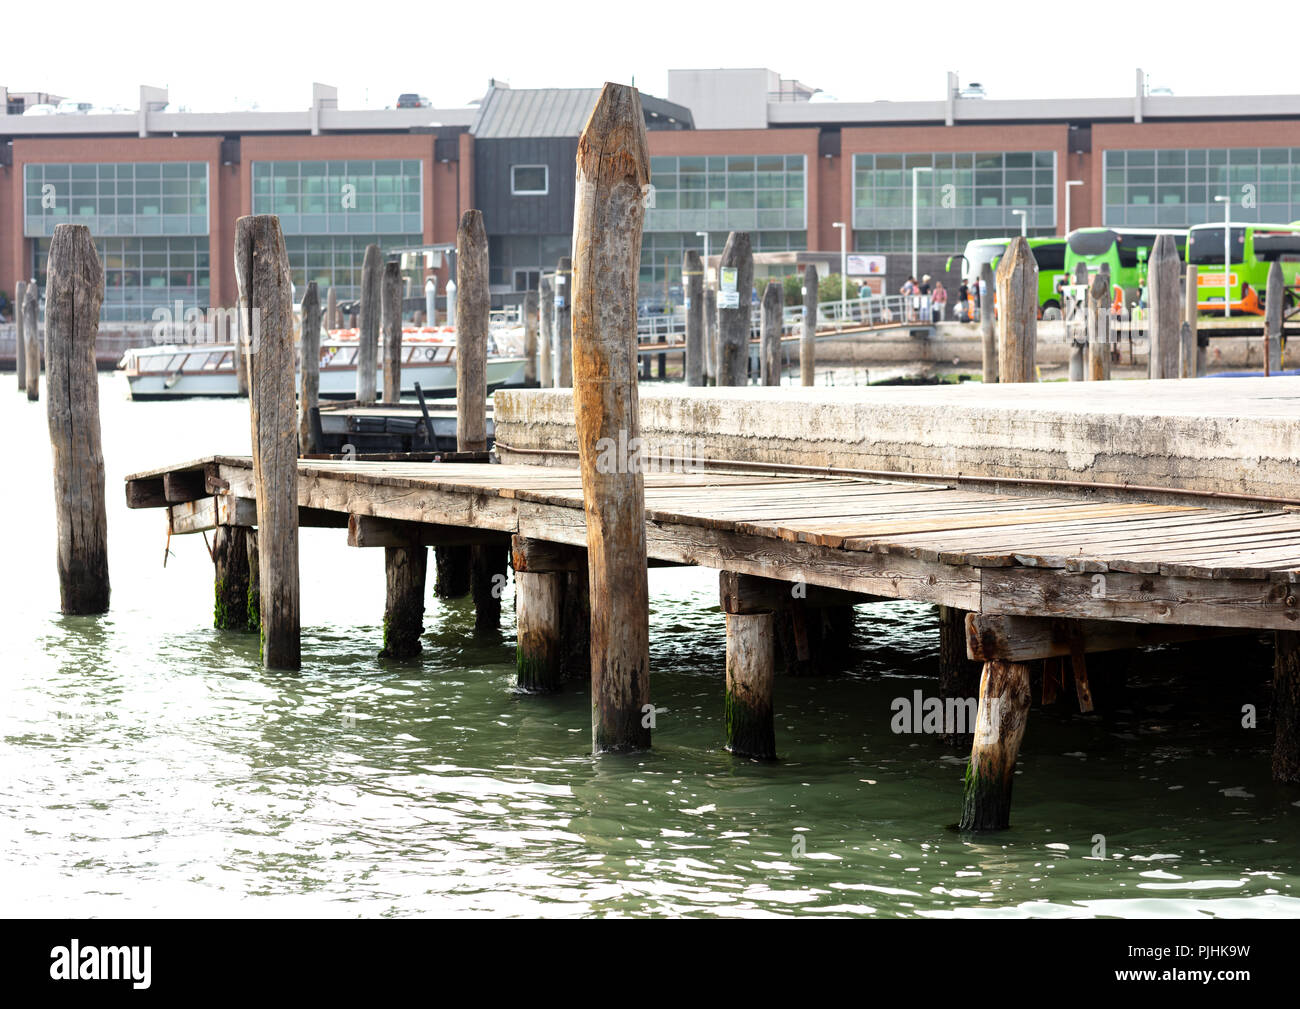 wooden pier supported in piles to embark tourist in Venice, in the background three green buses with a group of people and boats - Stock Image